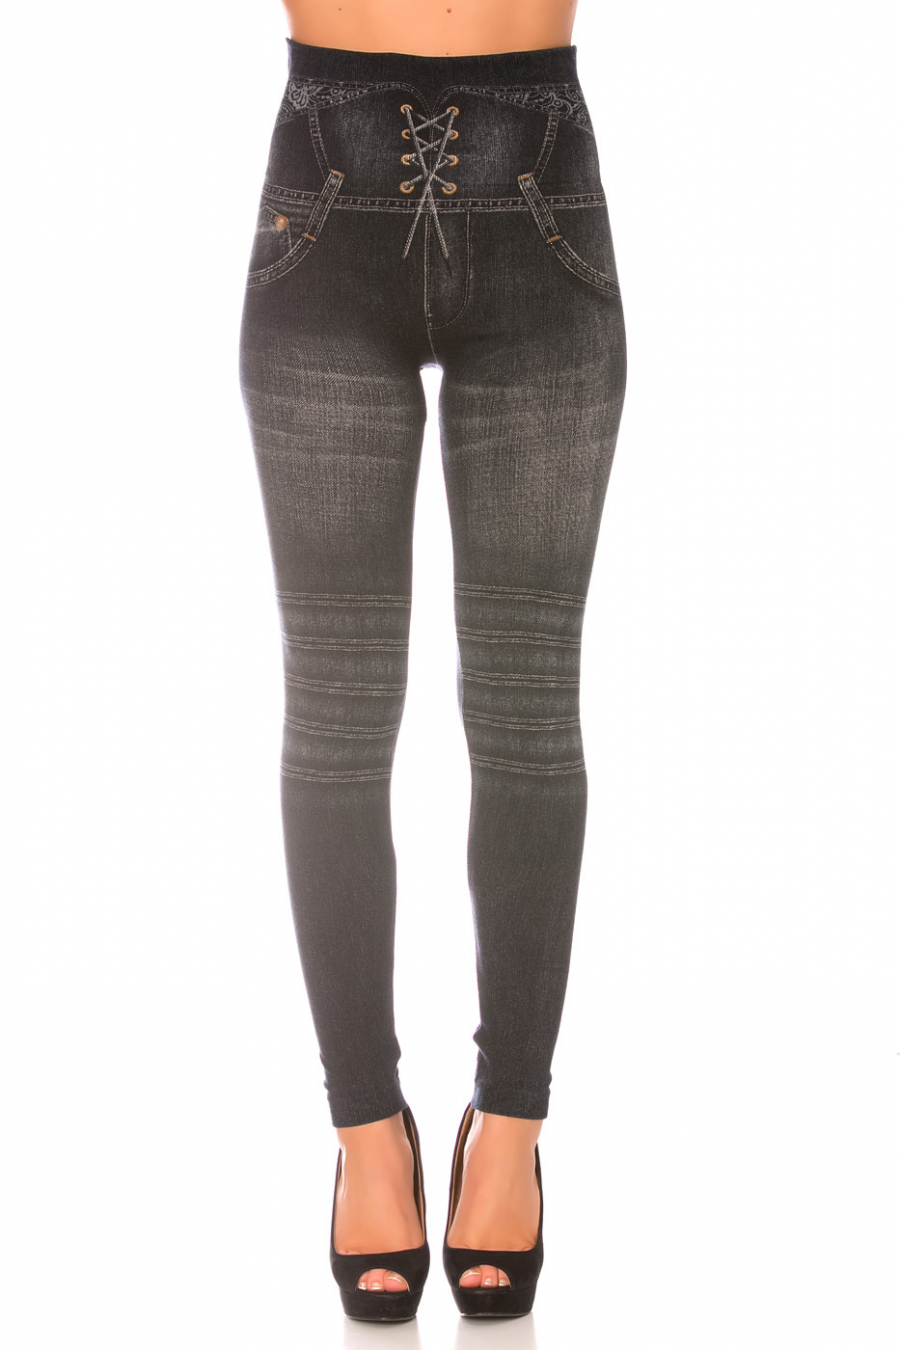 Black slimming leggings in high waist jeans style with a crossed link effect. Push-Up Effect